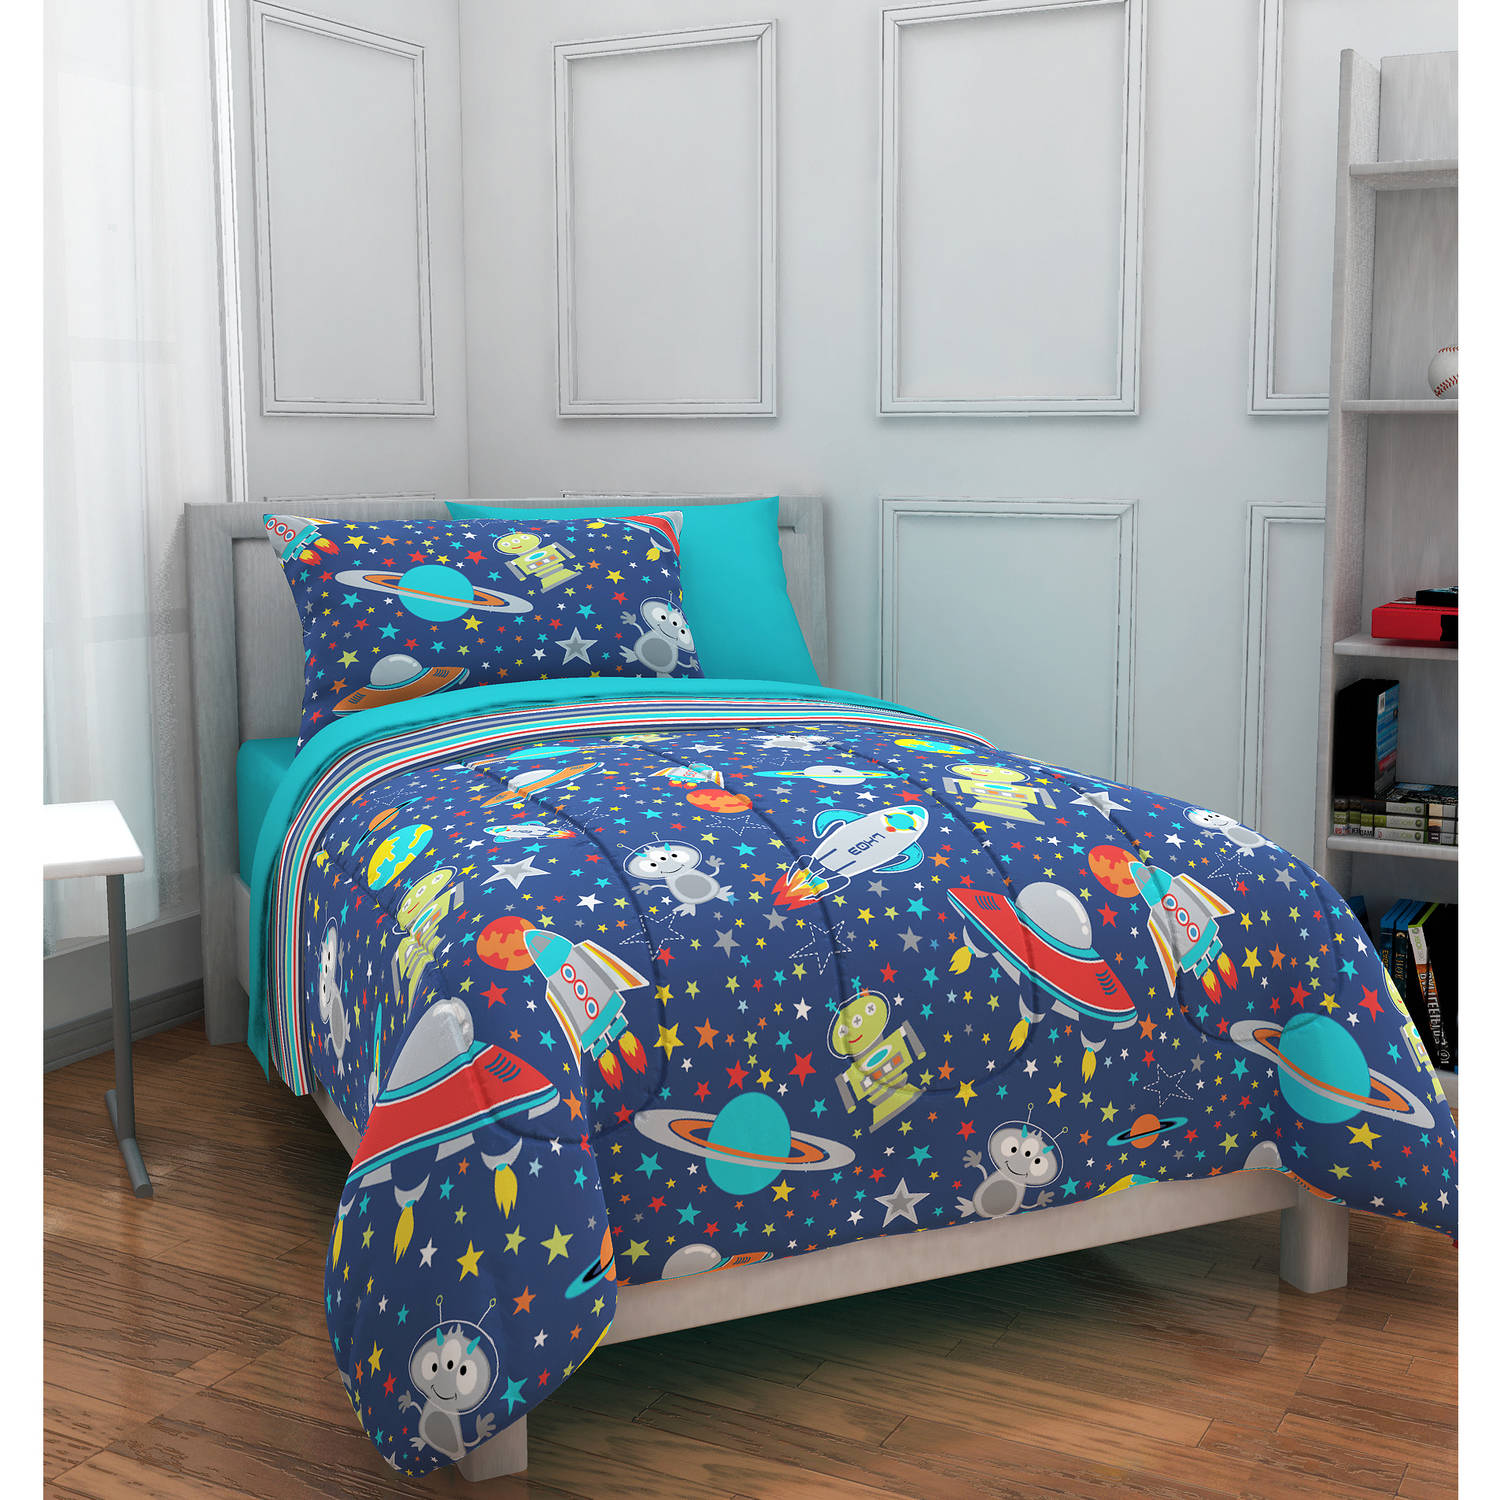 Amazing Mainstays Kids Outer Space Bed In A Bag Bedding Set   Walmart.com